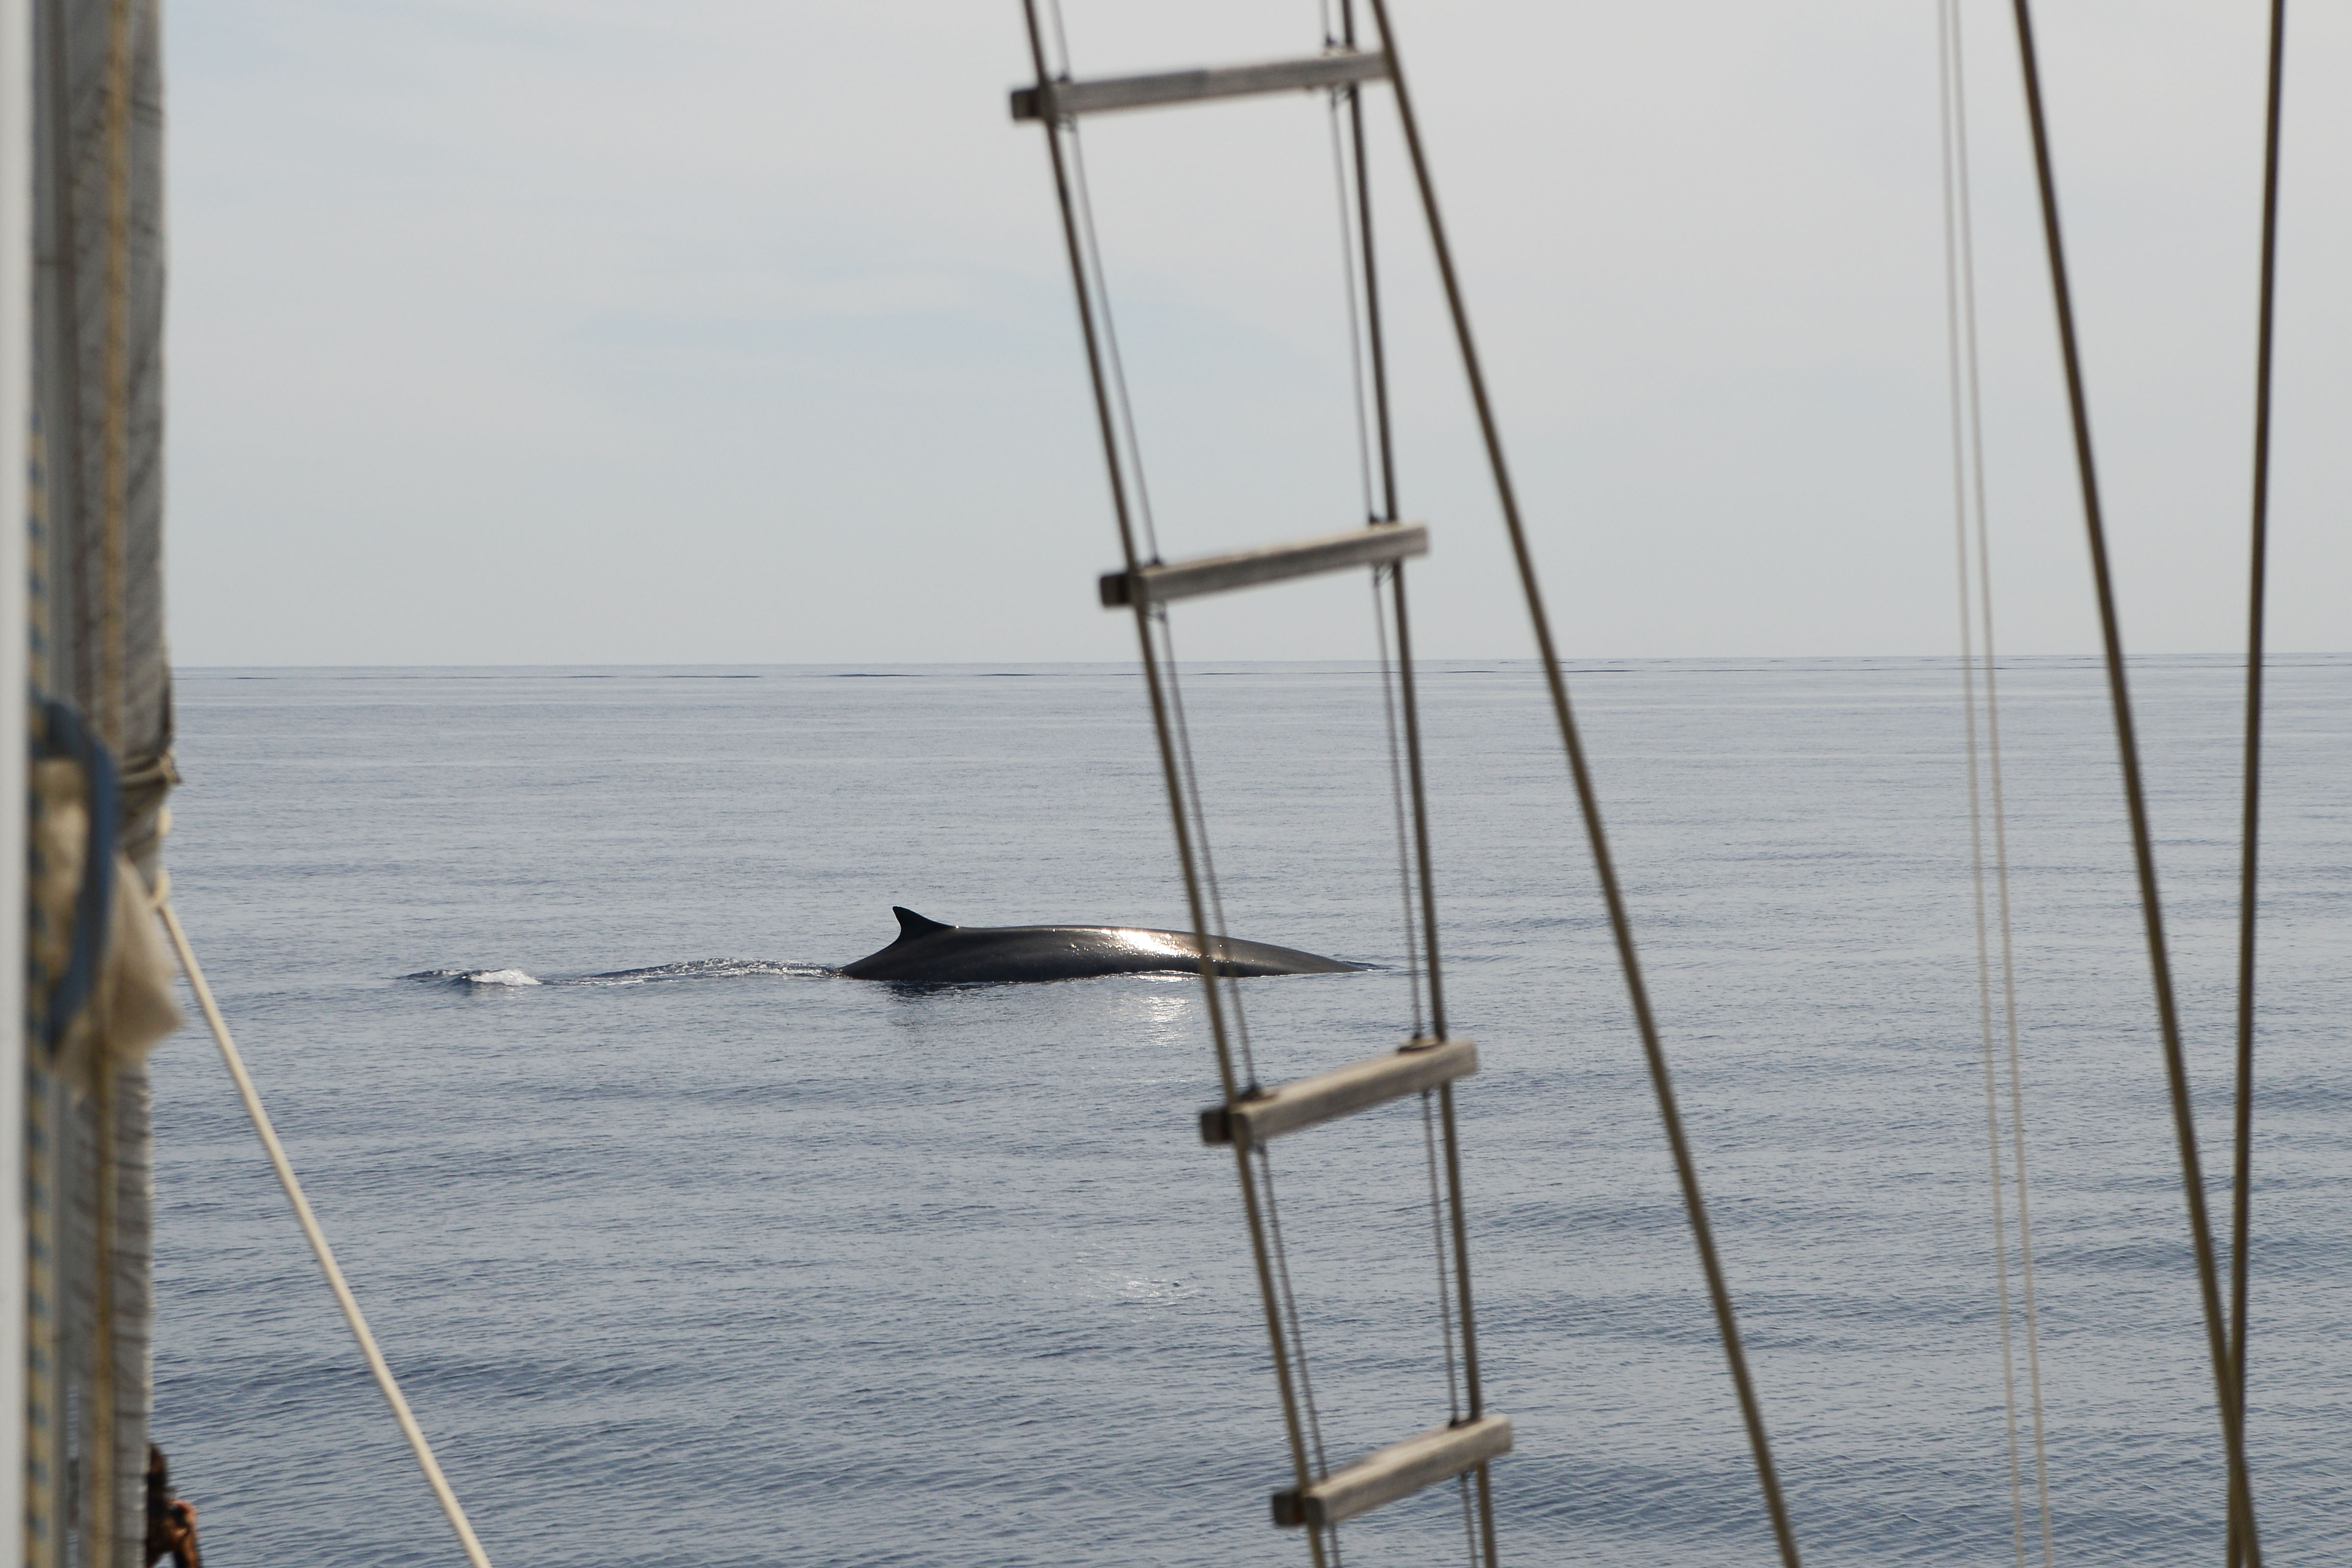 Sailing with fin whales